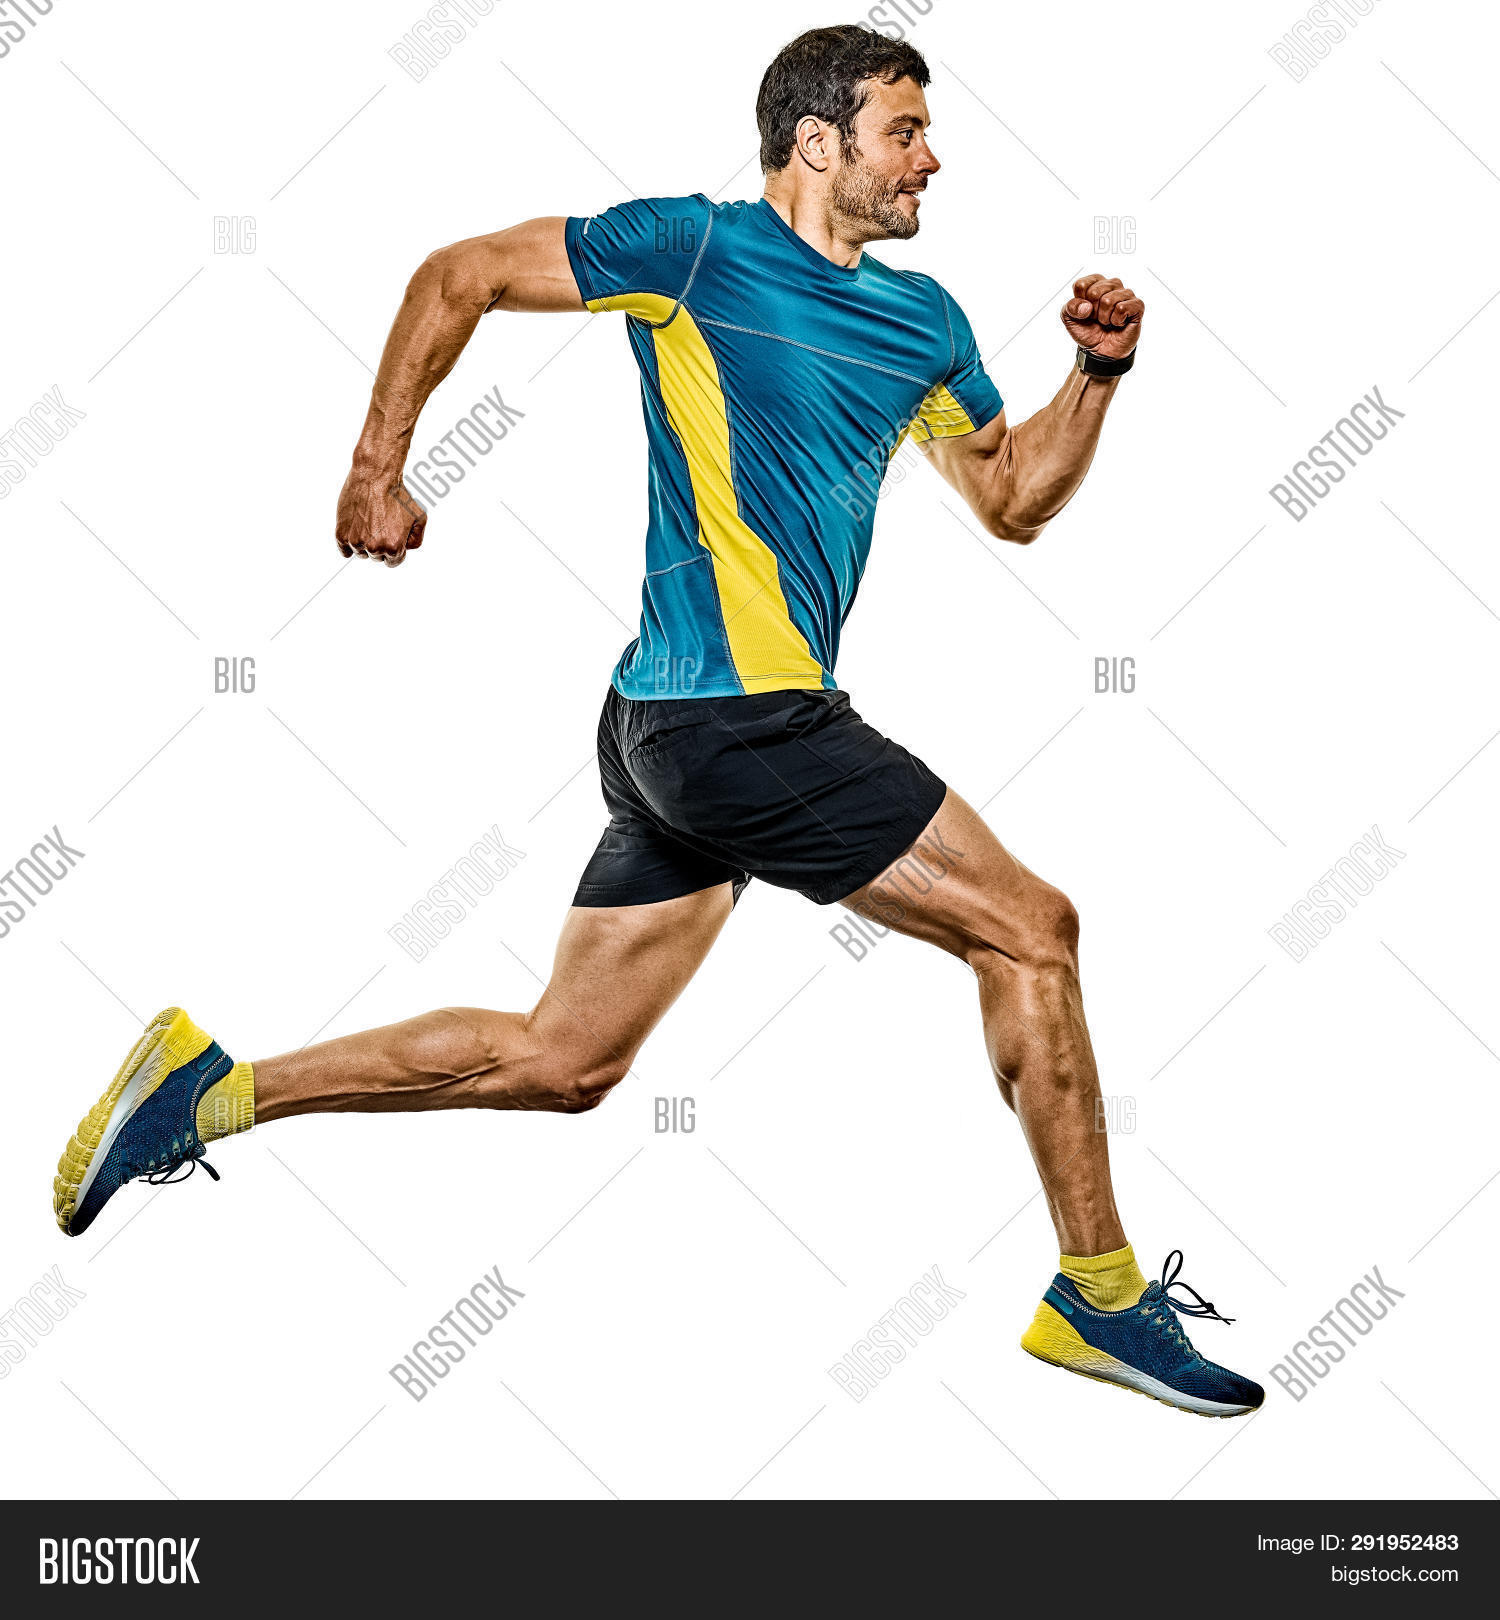 actions,adult,athlete,caucasian,cut out,european,full length,handsome,isolated,jogger,jogging,male,man,mature,muscles,muscular,one,one person,people,profile,runner,running,side view,smile,smiling,sport,studio shot,white background